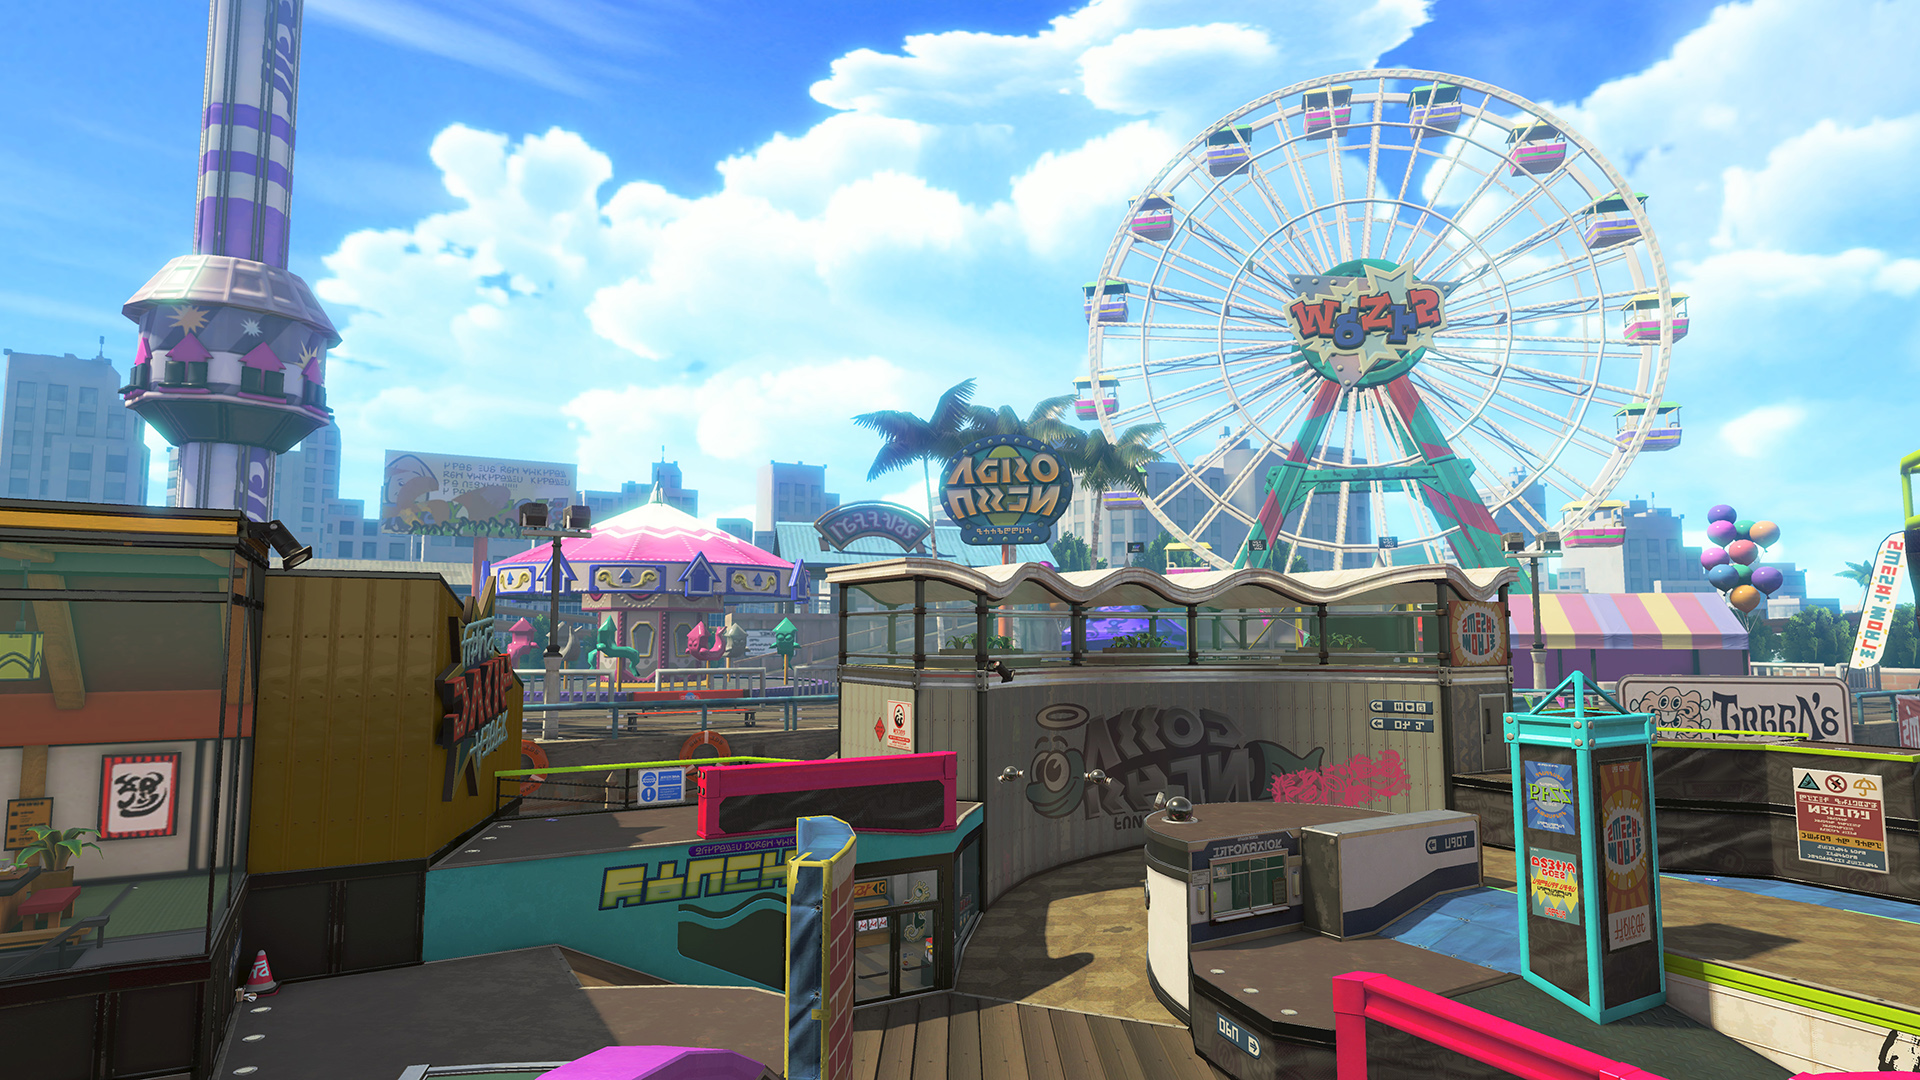 A large theme park map in the game